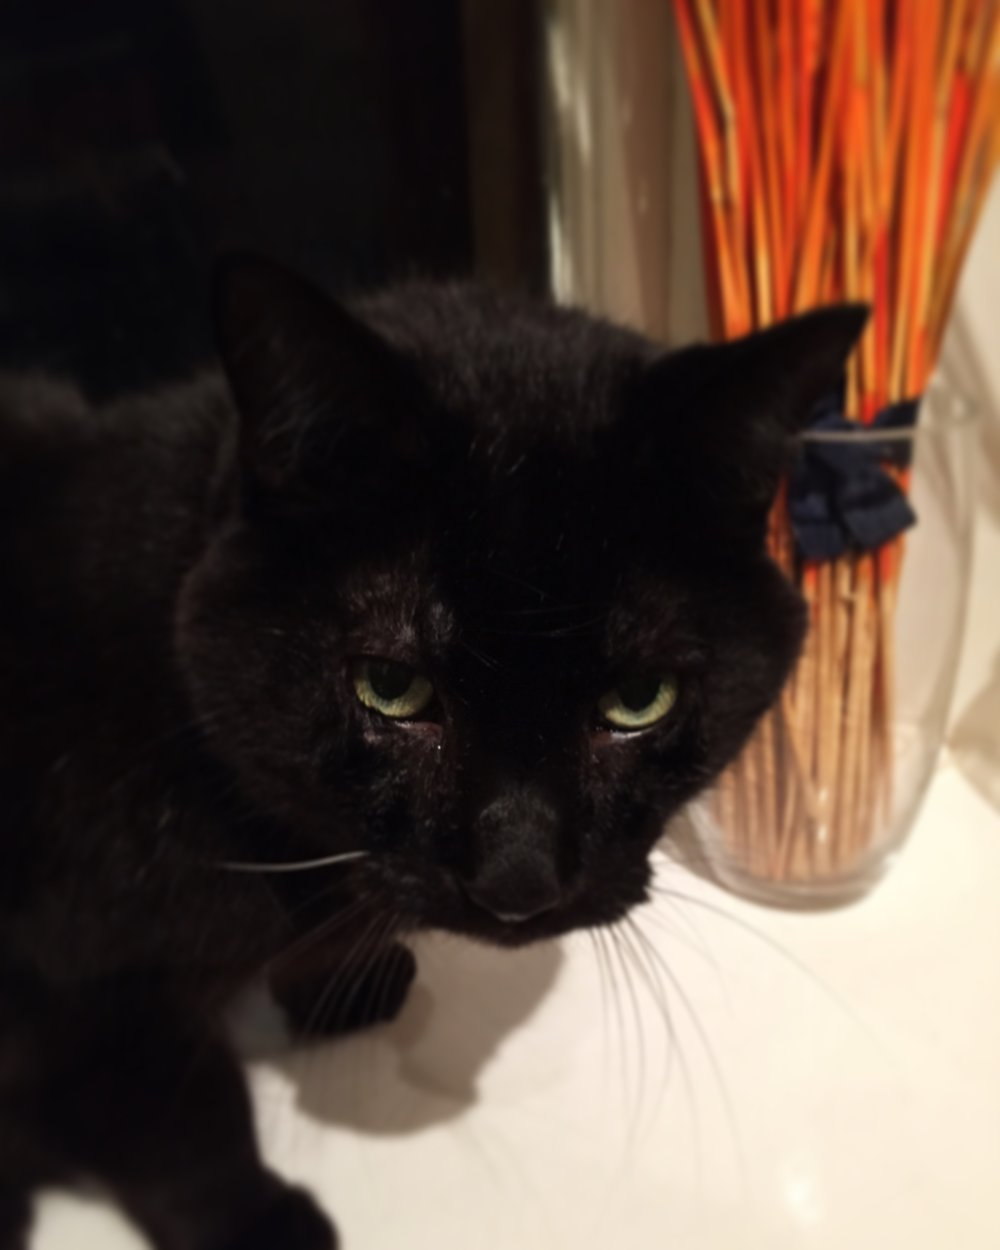 Rest in peace sweet Panther.